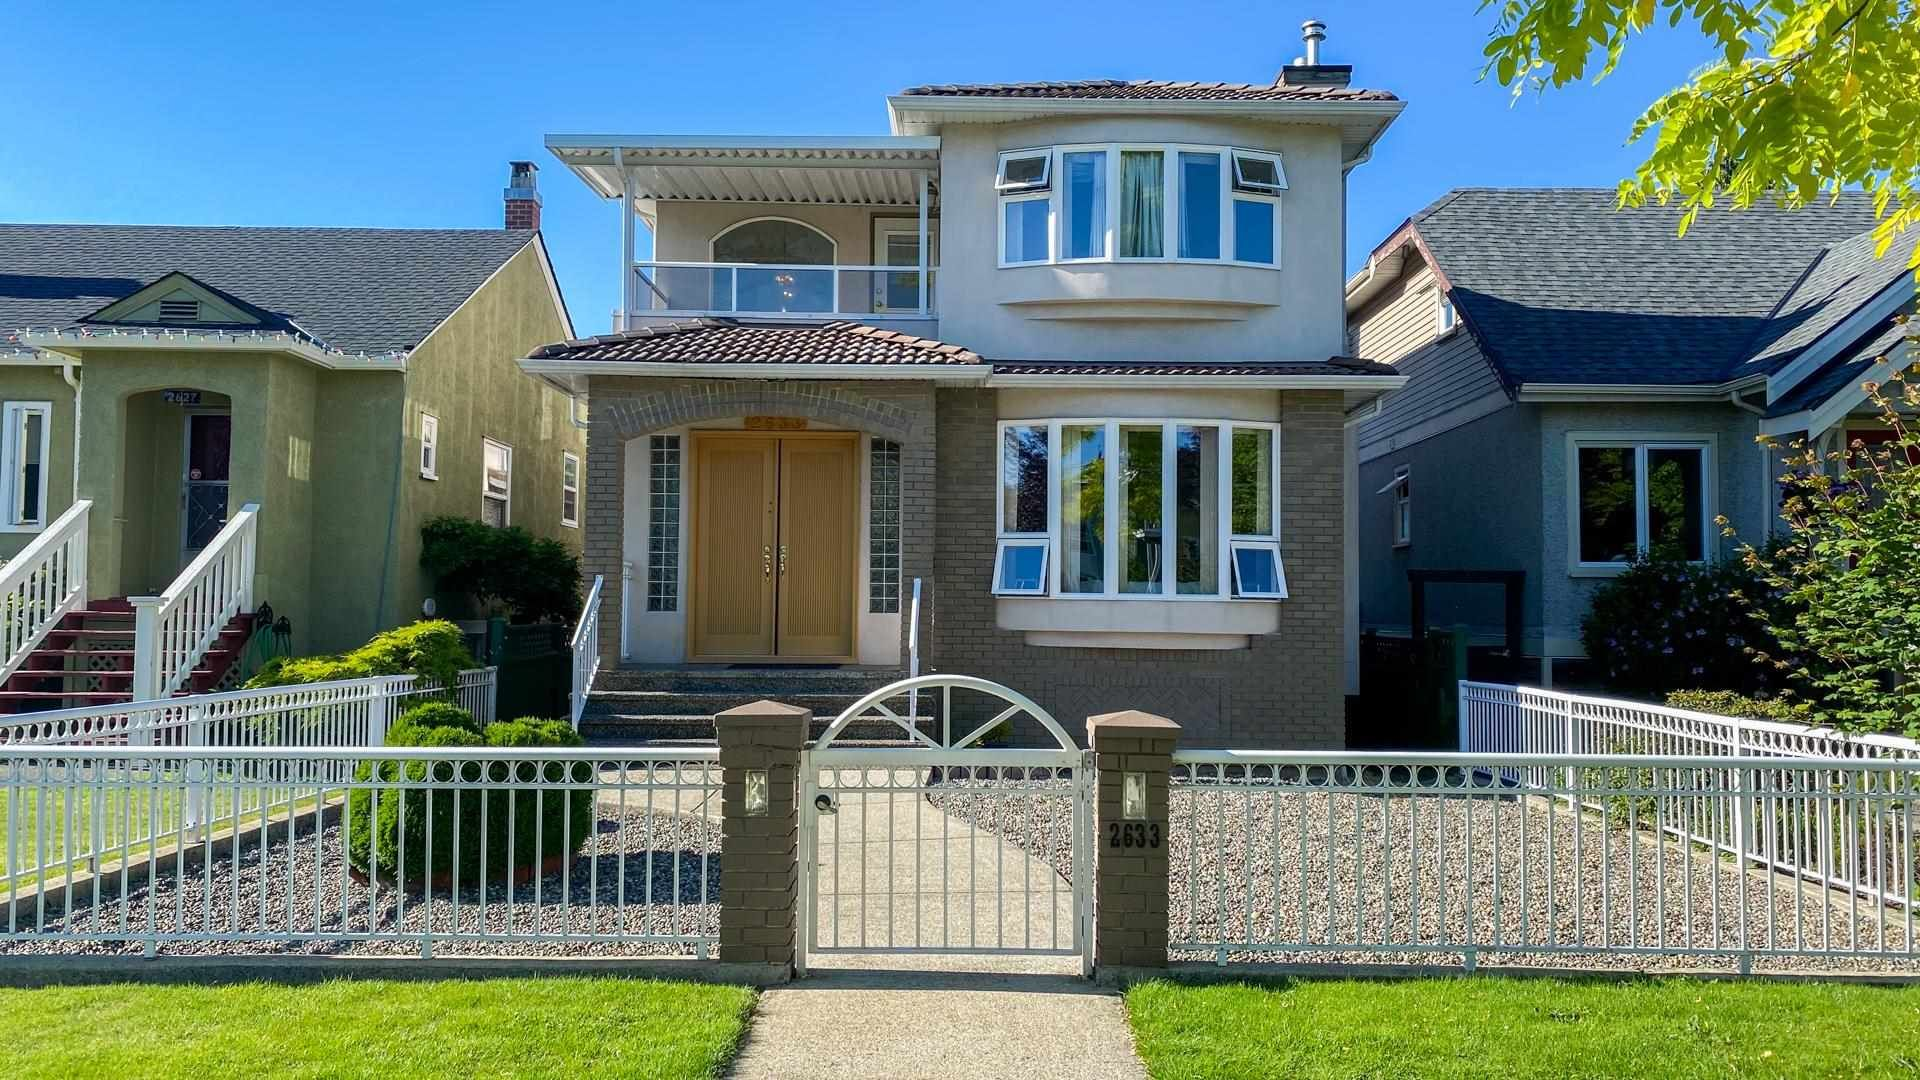 Main Photo: 2633 KITCHENER Street in Vancouver: Renfrew VE House for sale (Vancouver East)  : MLS®# R2595654